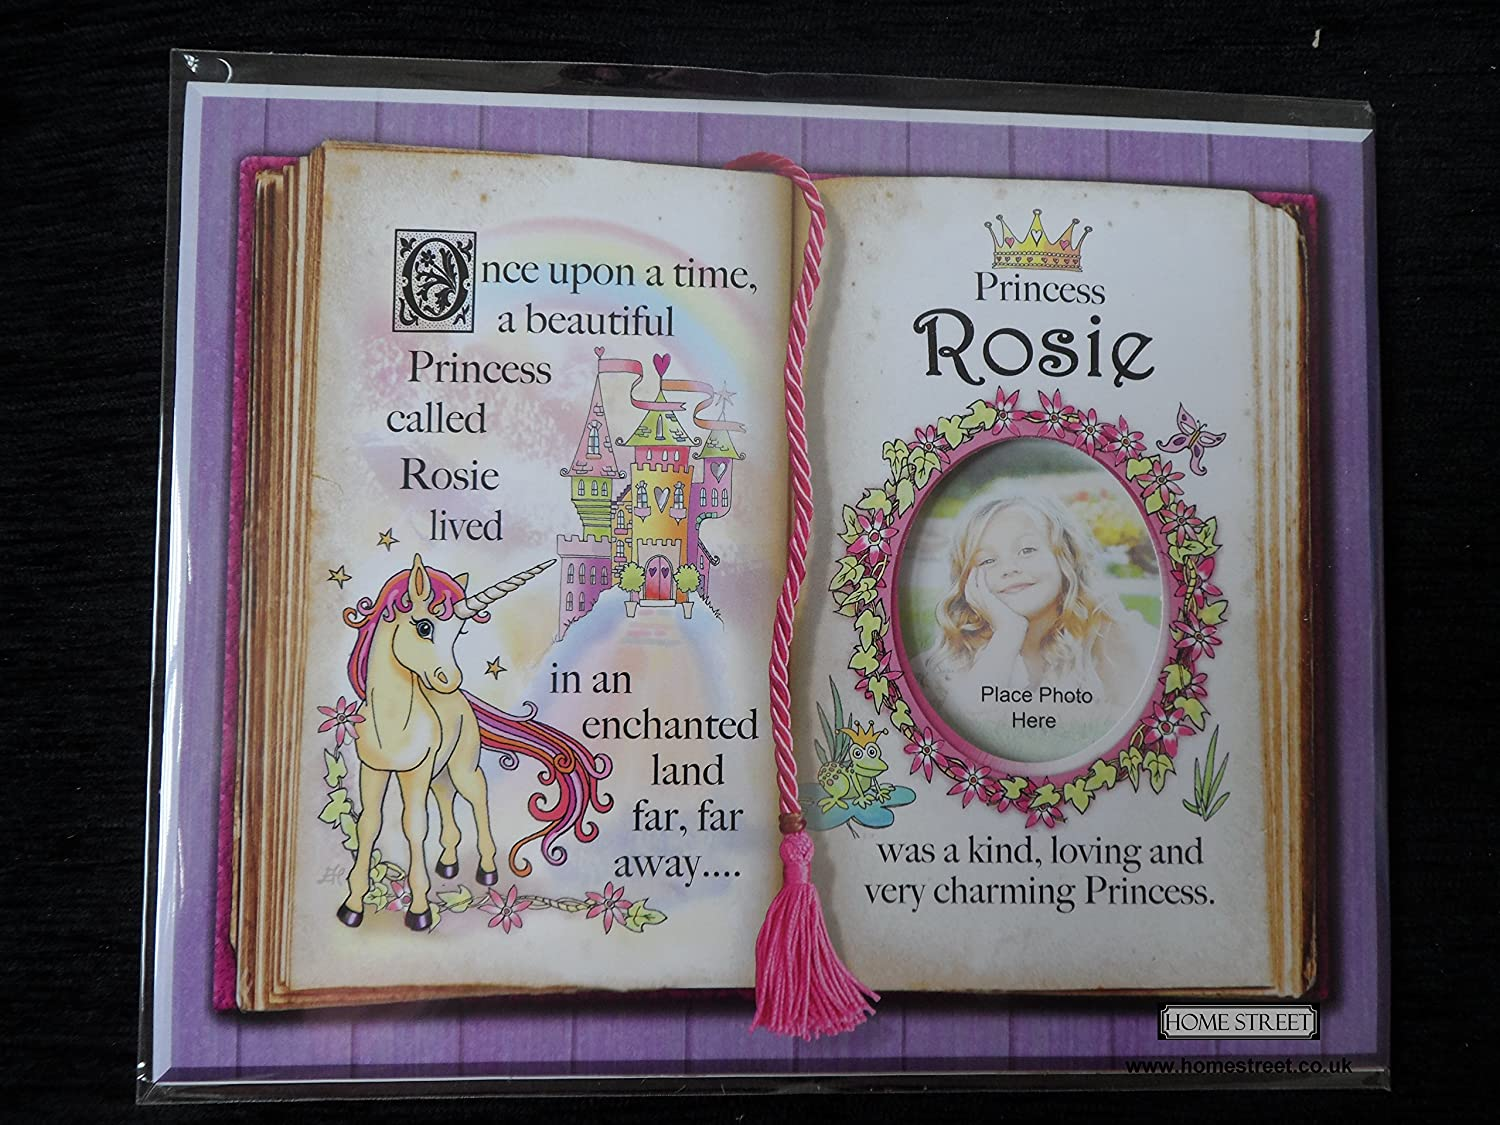 Gift For Rosie Princess Unicorn Mount With Special Verse And Choice Of Photo Frame (White Frame) Homestreet